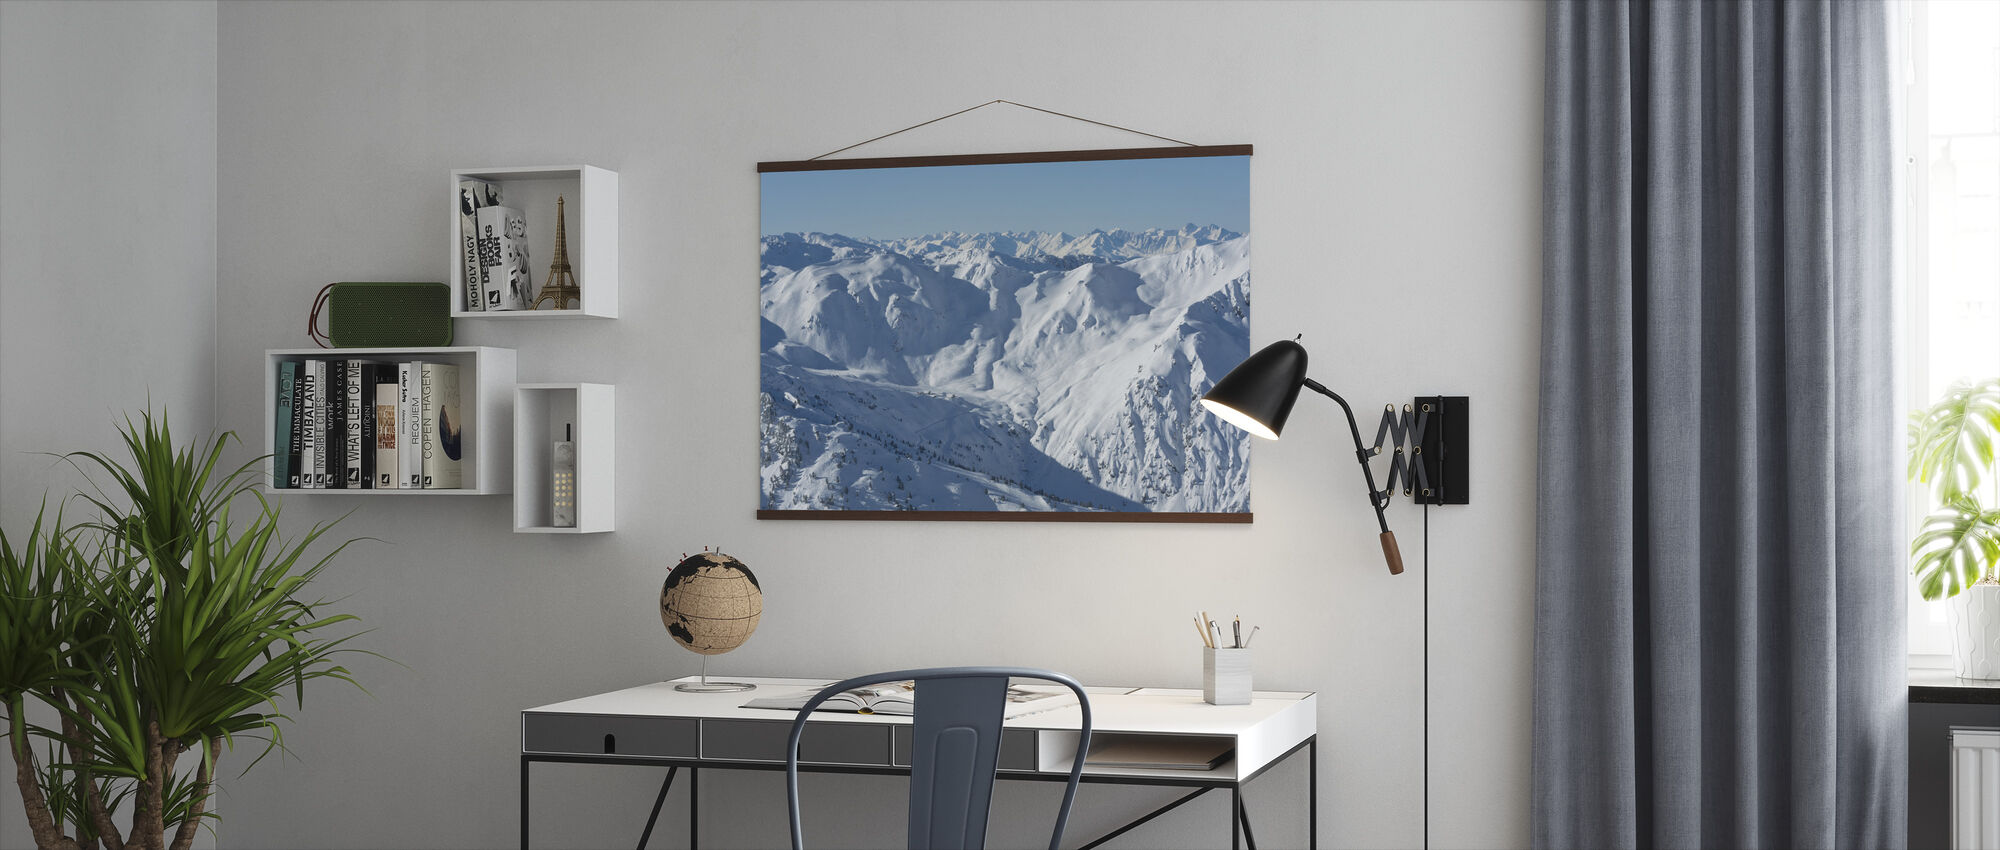 Ski Slopes of Zillertal - Poster - Office